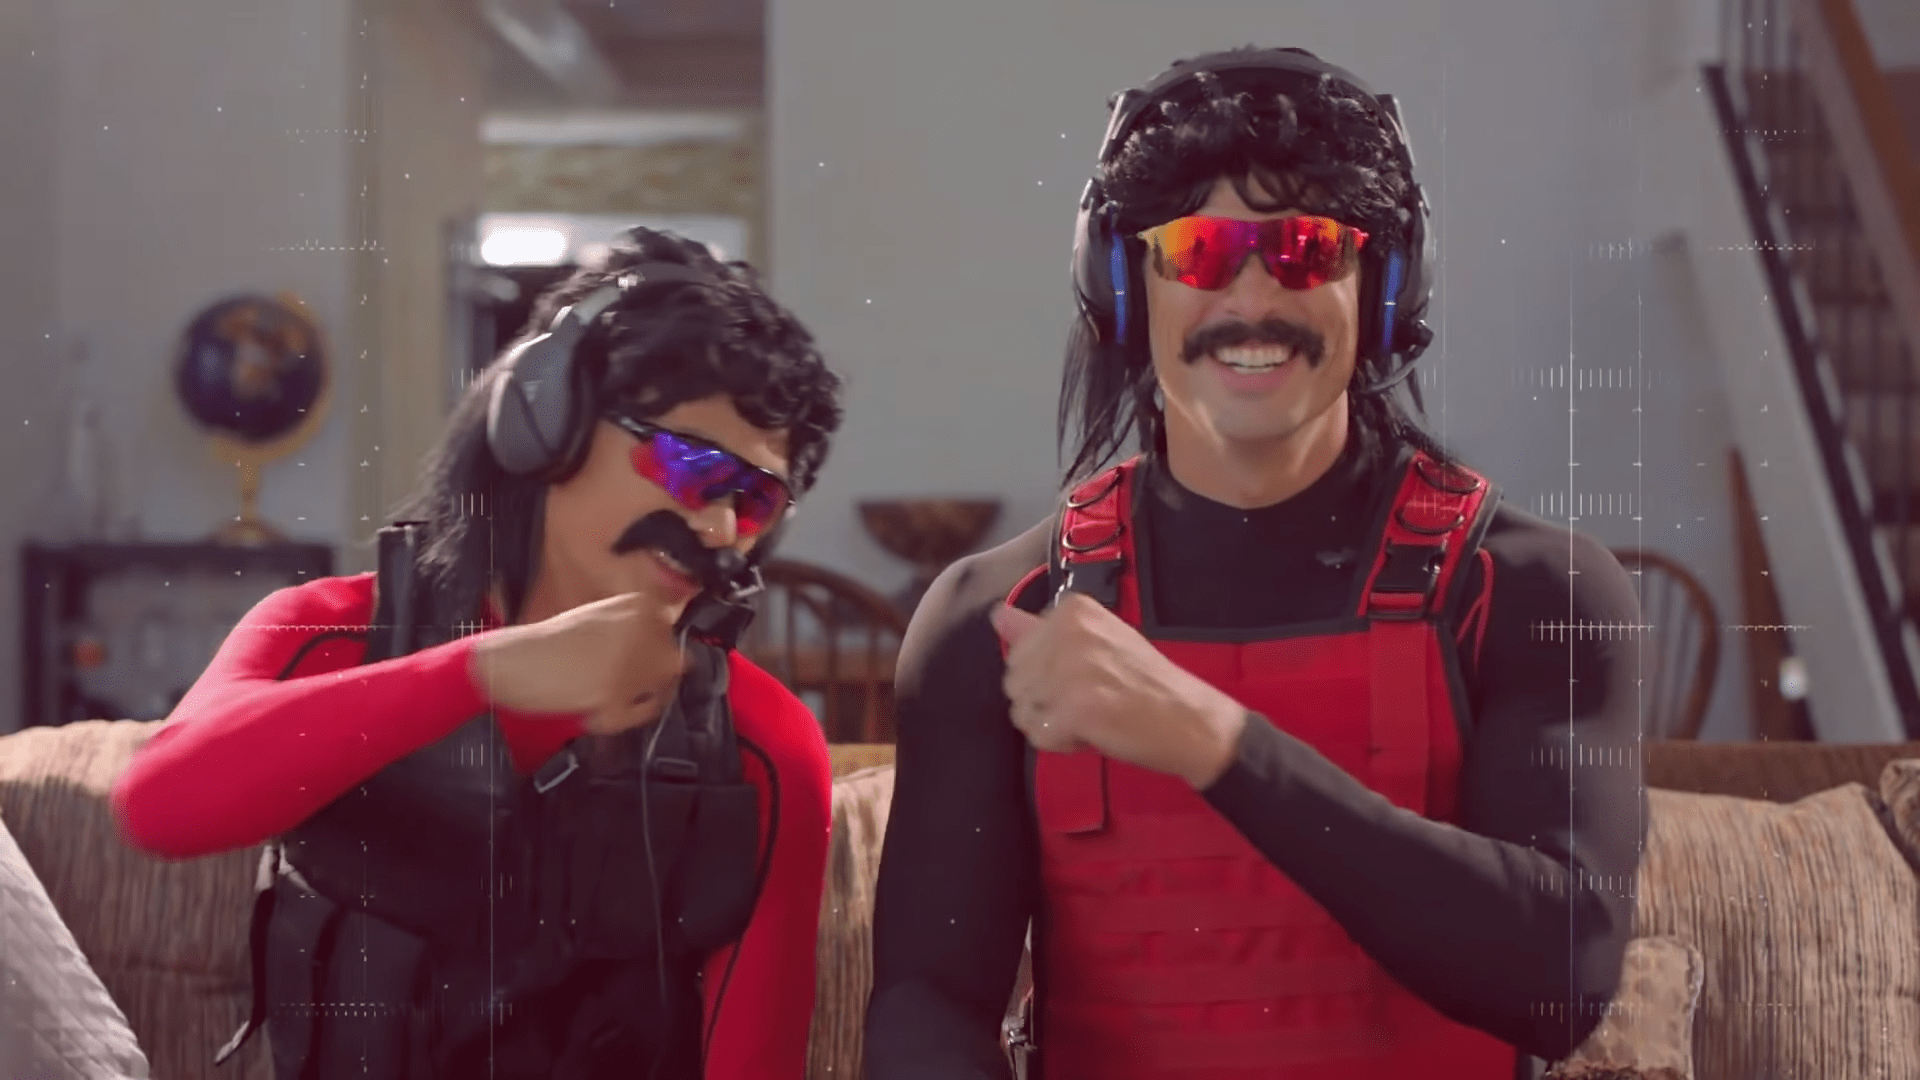 Dr Disrespect Starts Firing His Shots At Mixer For 2020 On Twitter, Mixer Responds